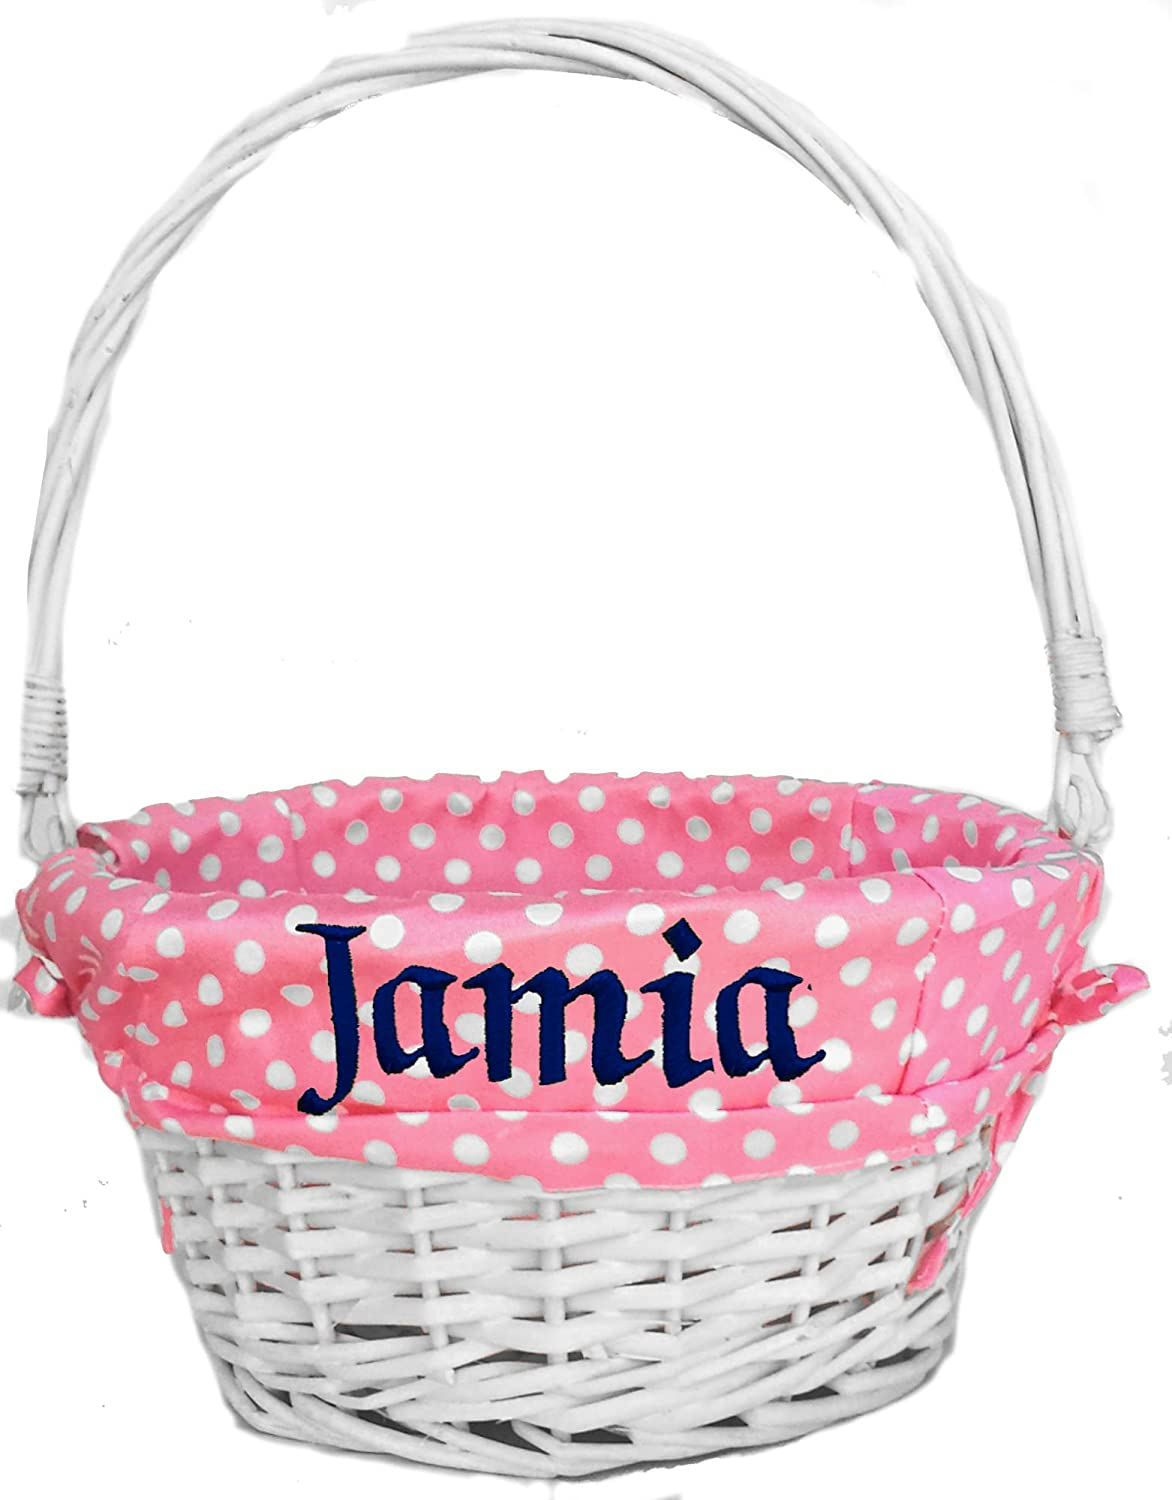 Personalized Easter Basket for Girls Pink Coral – Personalized White Wicker Basket with Folding Handle and Easter Polka Dot Liner Kids Monogrammed with Child s Name in Embroidery